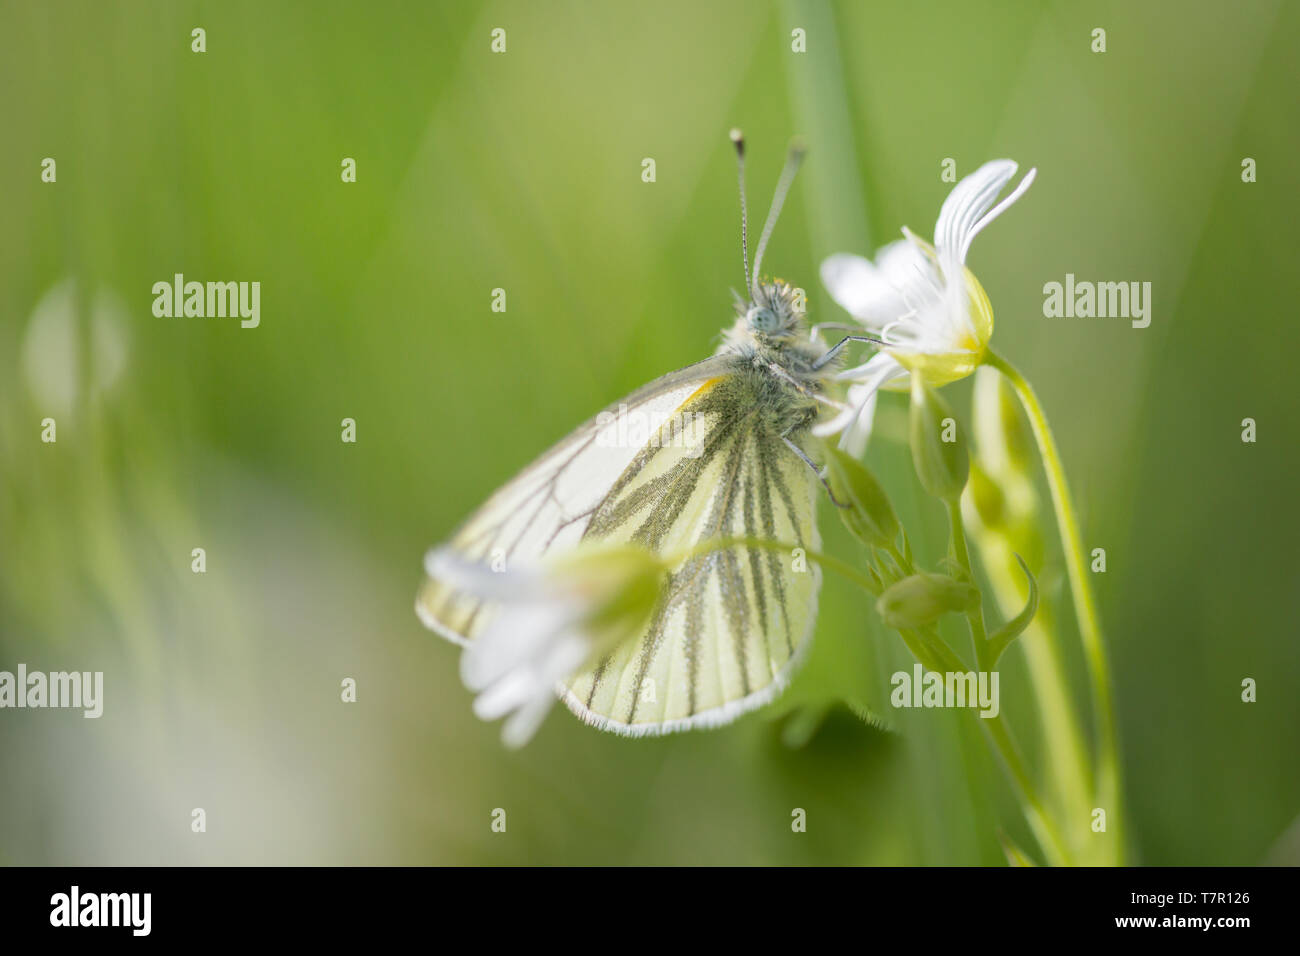 Green-veined white butterfly roosting on a small white stitchwort wild flower in a summer meadow in the English countryside in a protected environment. - Stock Image